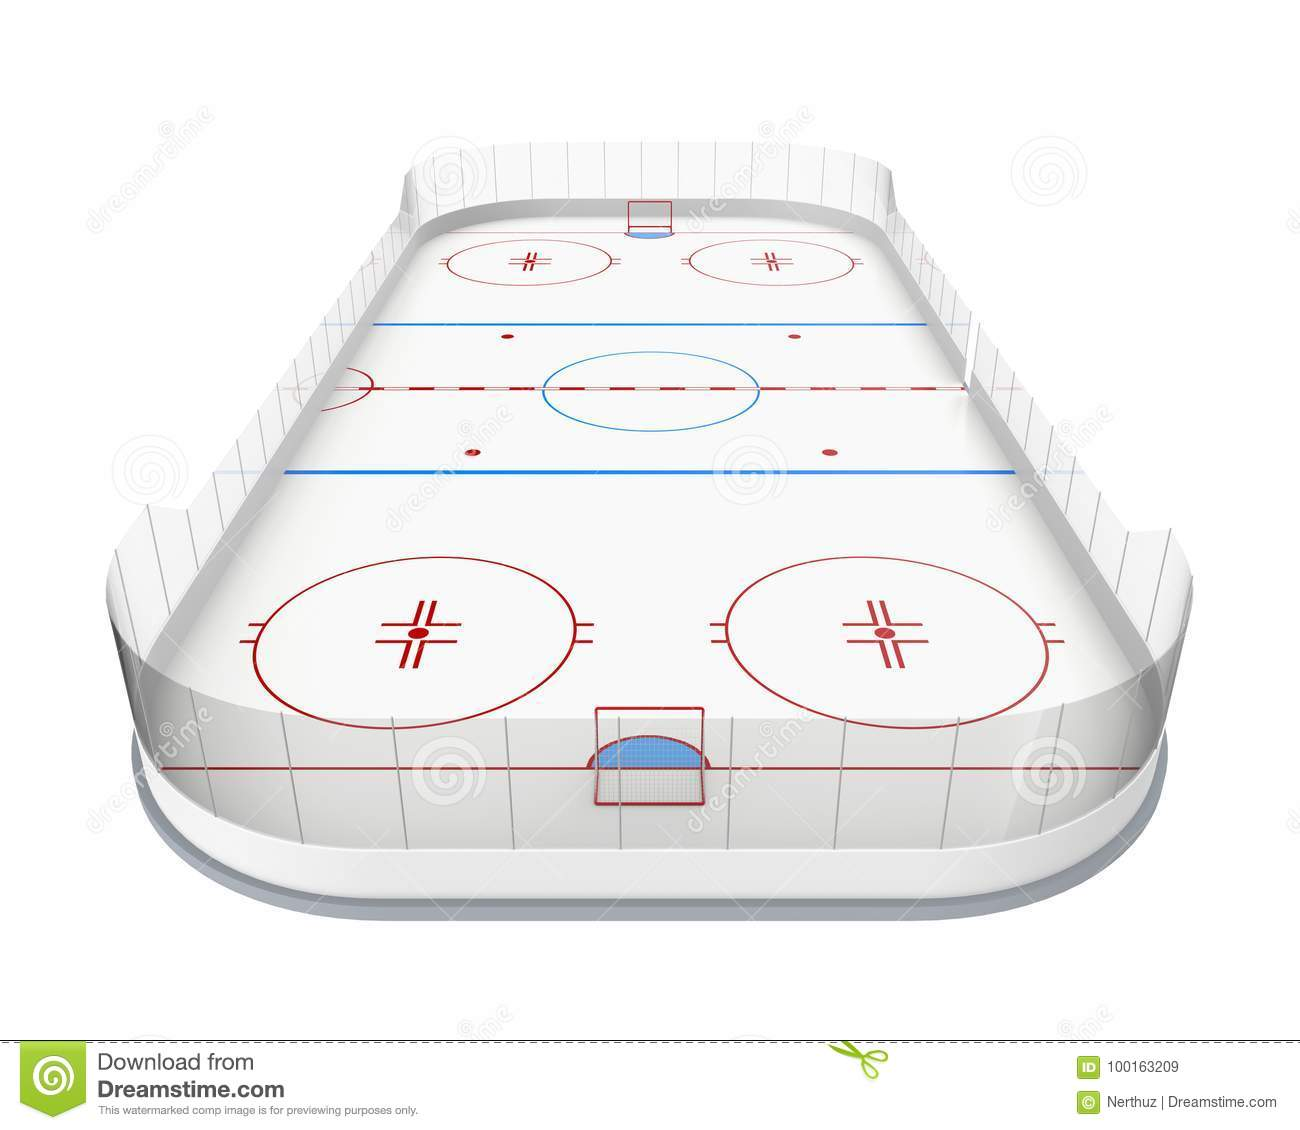 hight resolution of empty hockey rink diagram wiring diagram centreice hockey rink isolated stock illustration illustration of areaice hockey